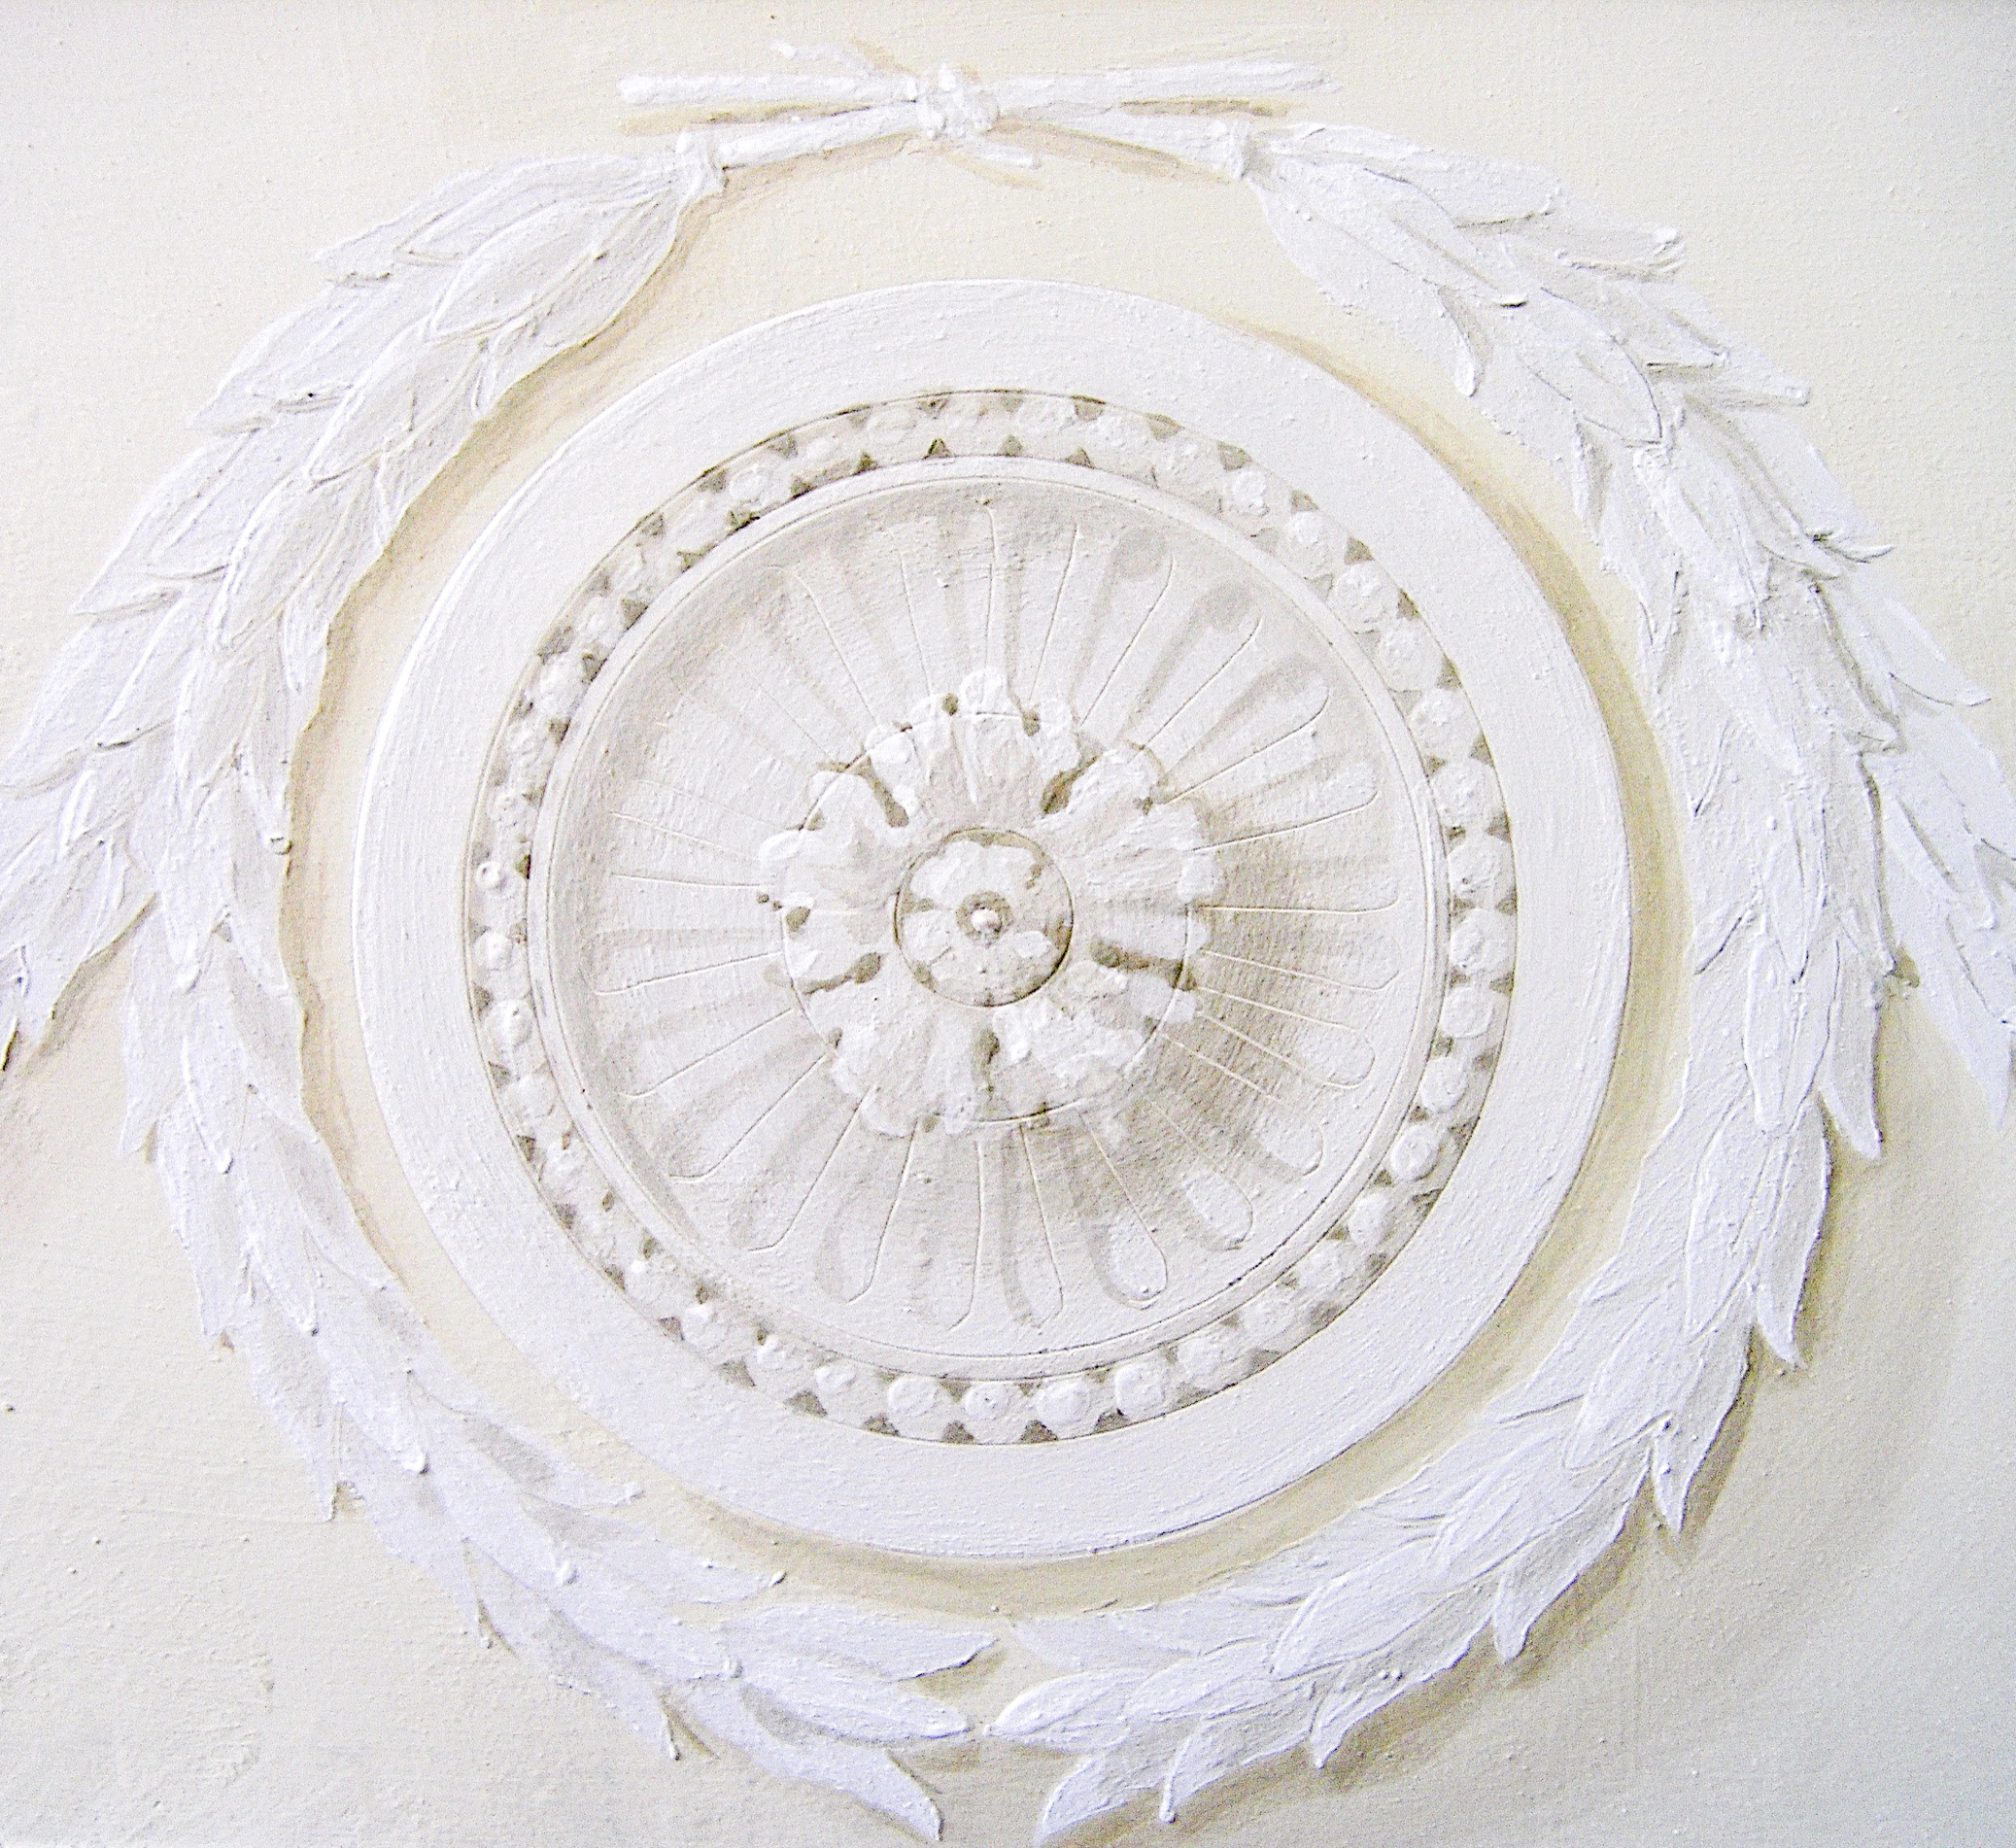 Rosette Decoration Mayfair - Alexander Hamilton - Decorative Painter - London